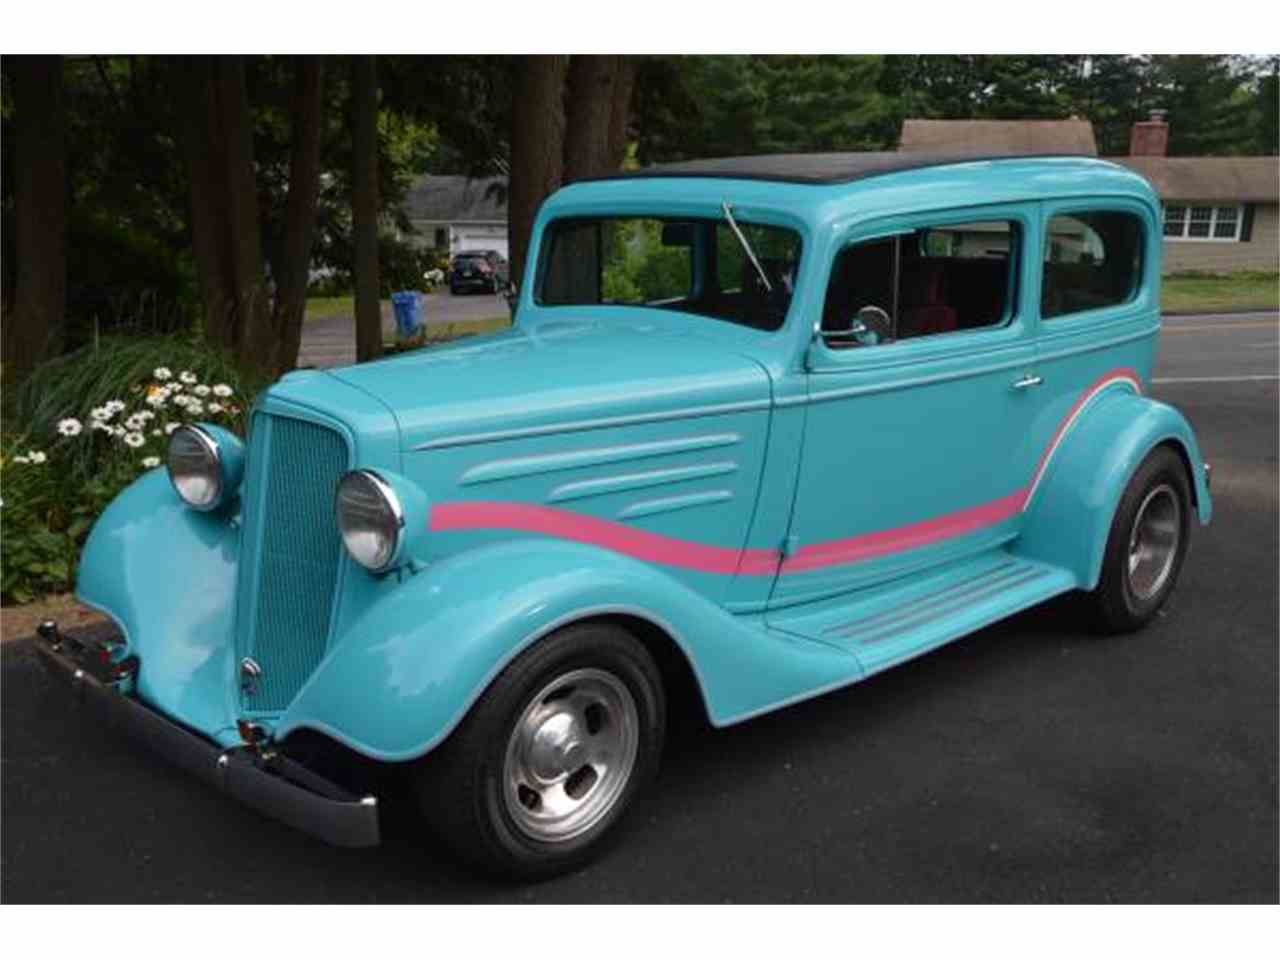 Cars For Sale In Ri: 1935 Chevrolet Deluxe For Sale